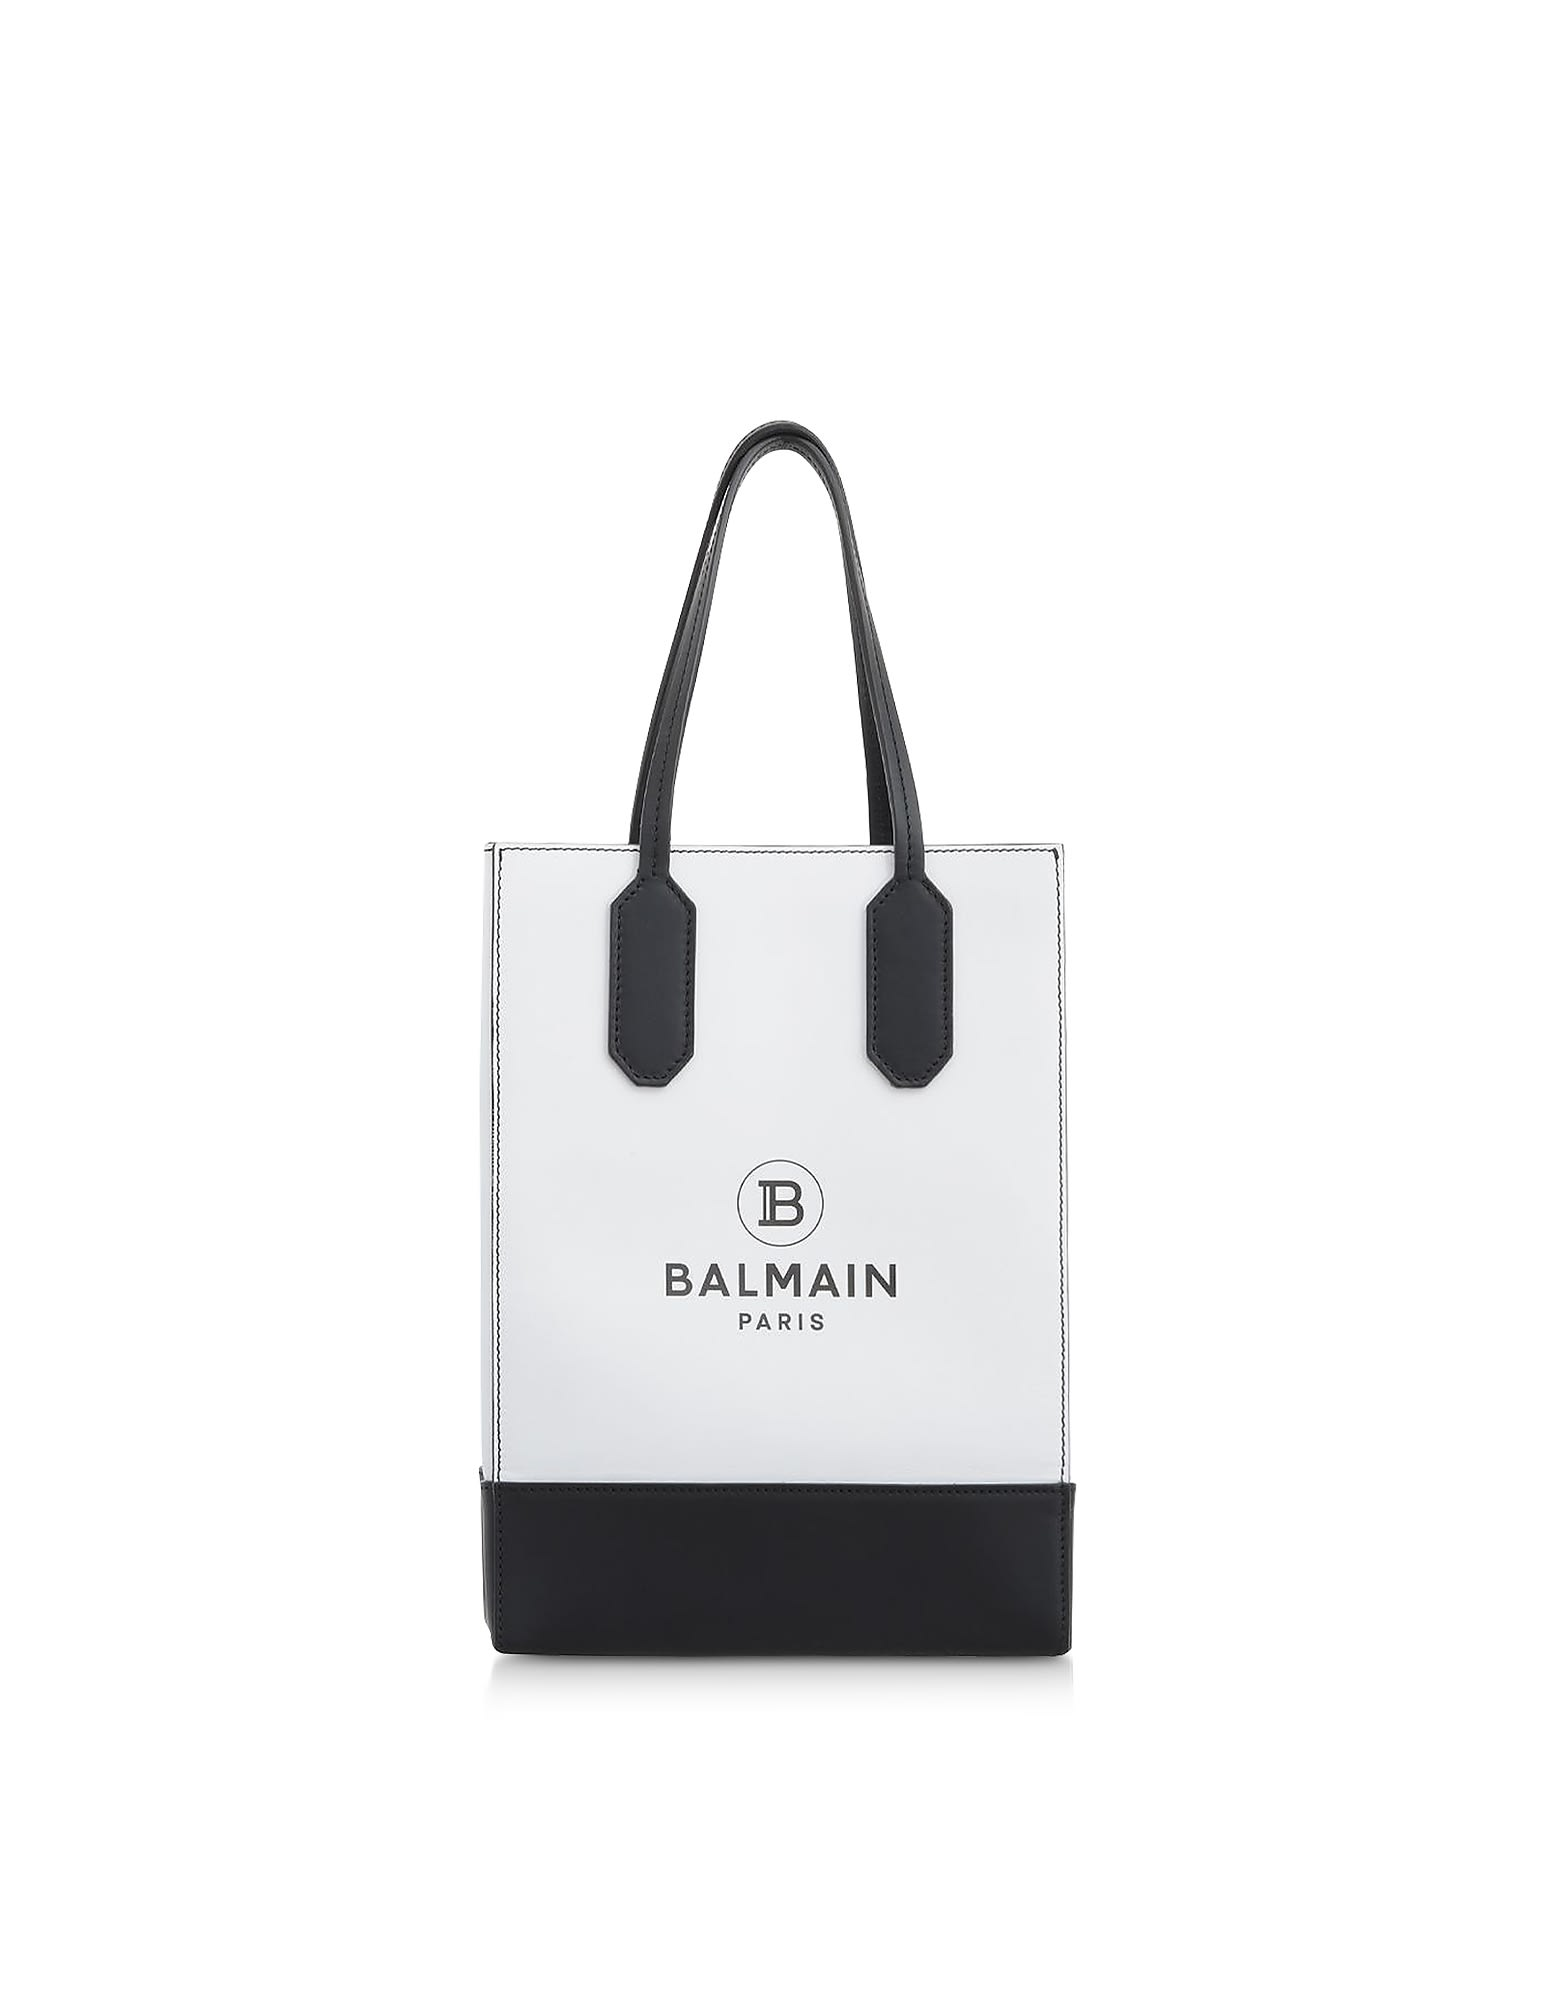 Balmain White & Black Printed Leather Shopping Bag